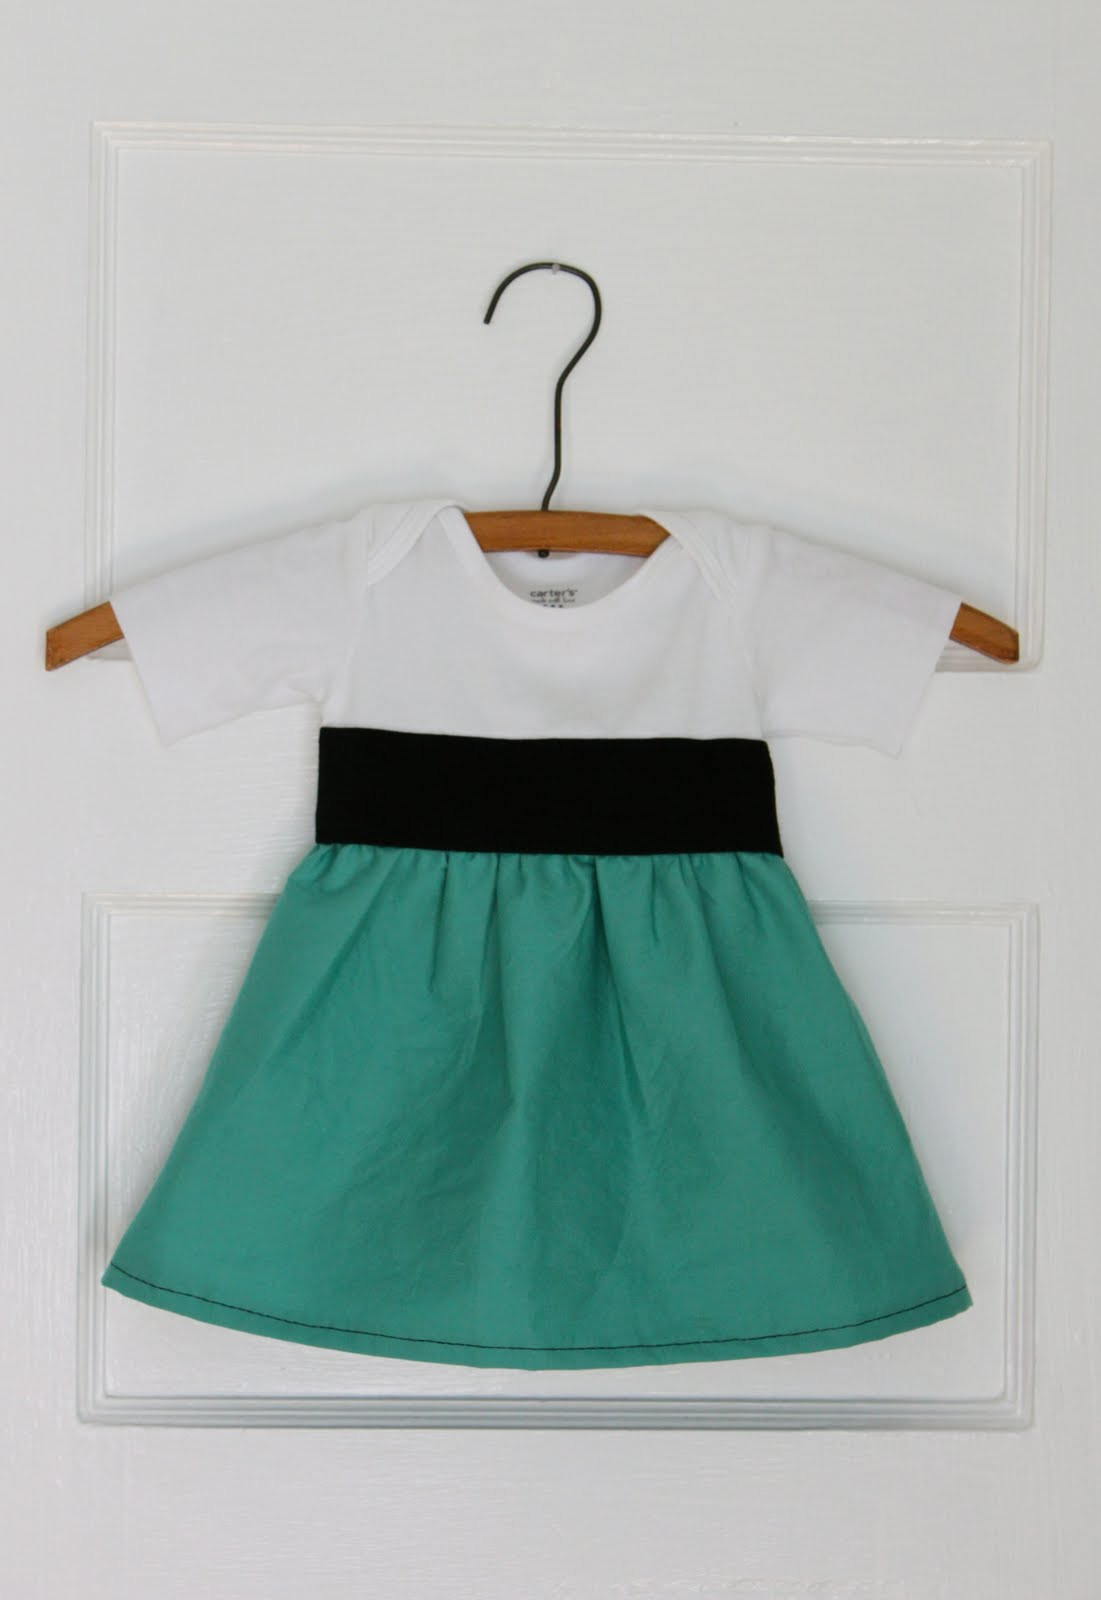 Best ideas about DIY Baby Dress . Save or Pin Smile and Wave DIY esie to Dress Tutorial Now.